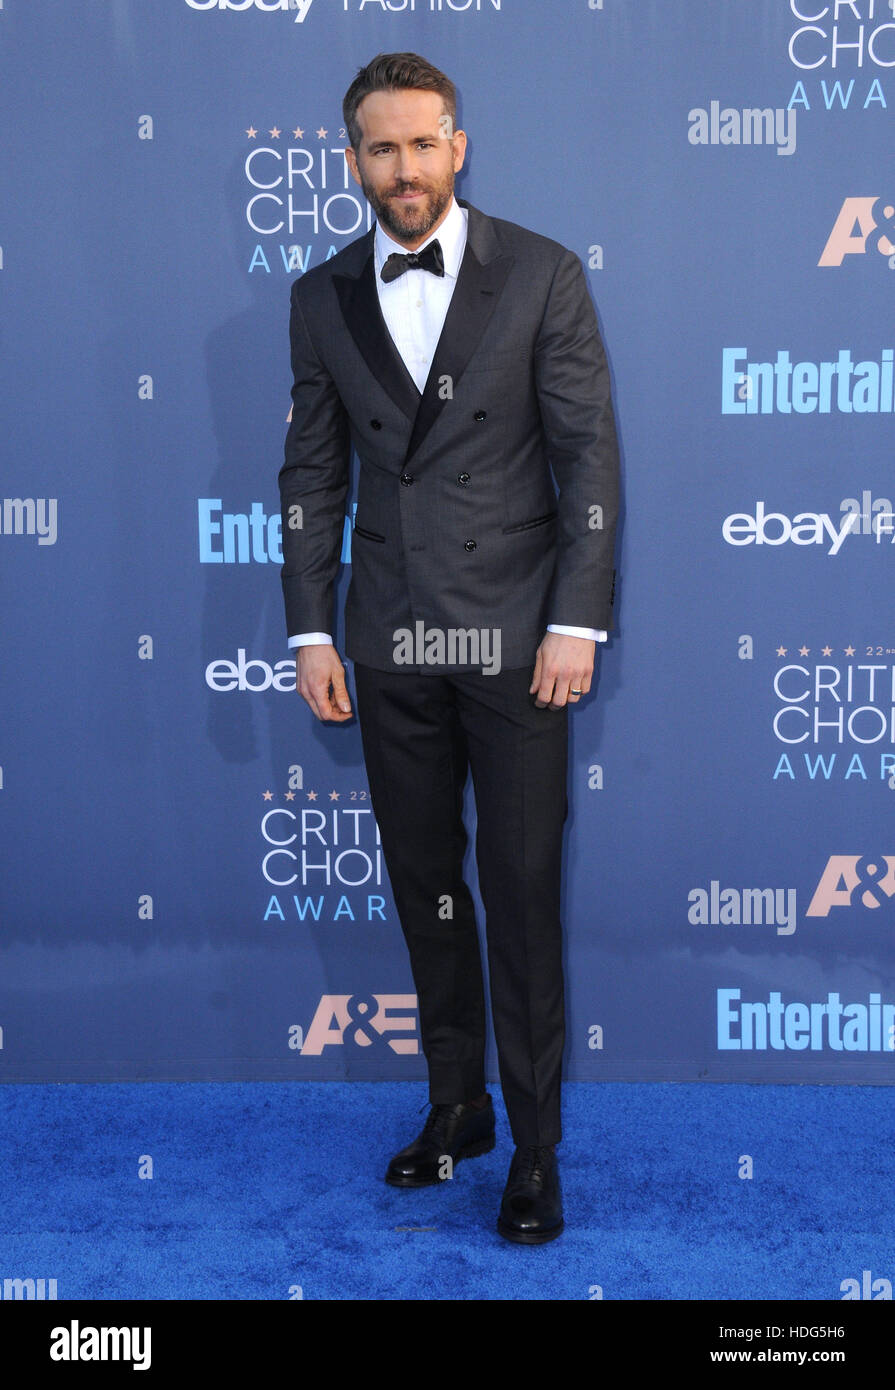 Santa Monica, Kalifornien, USA. 11. Dezember 2016. Ryan Reynolds. 22. Annual Critics' Choice Awards auf Barker Stockbild